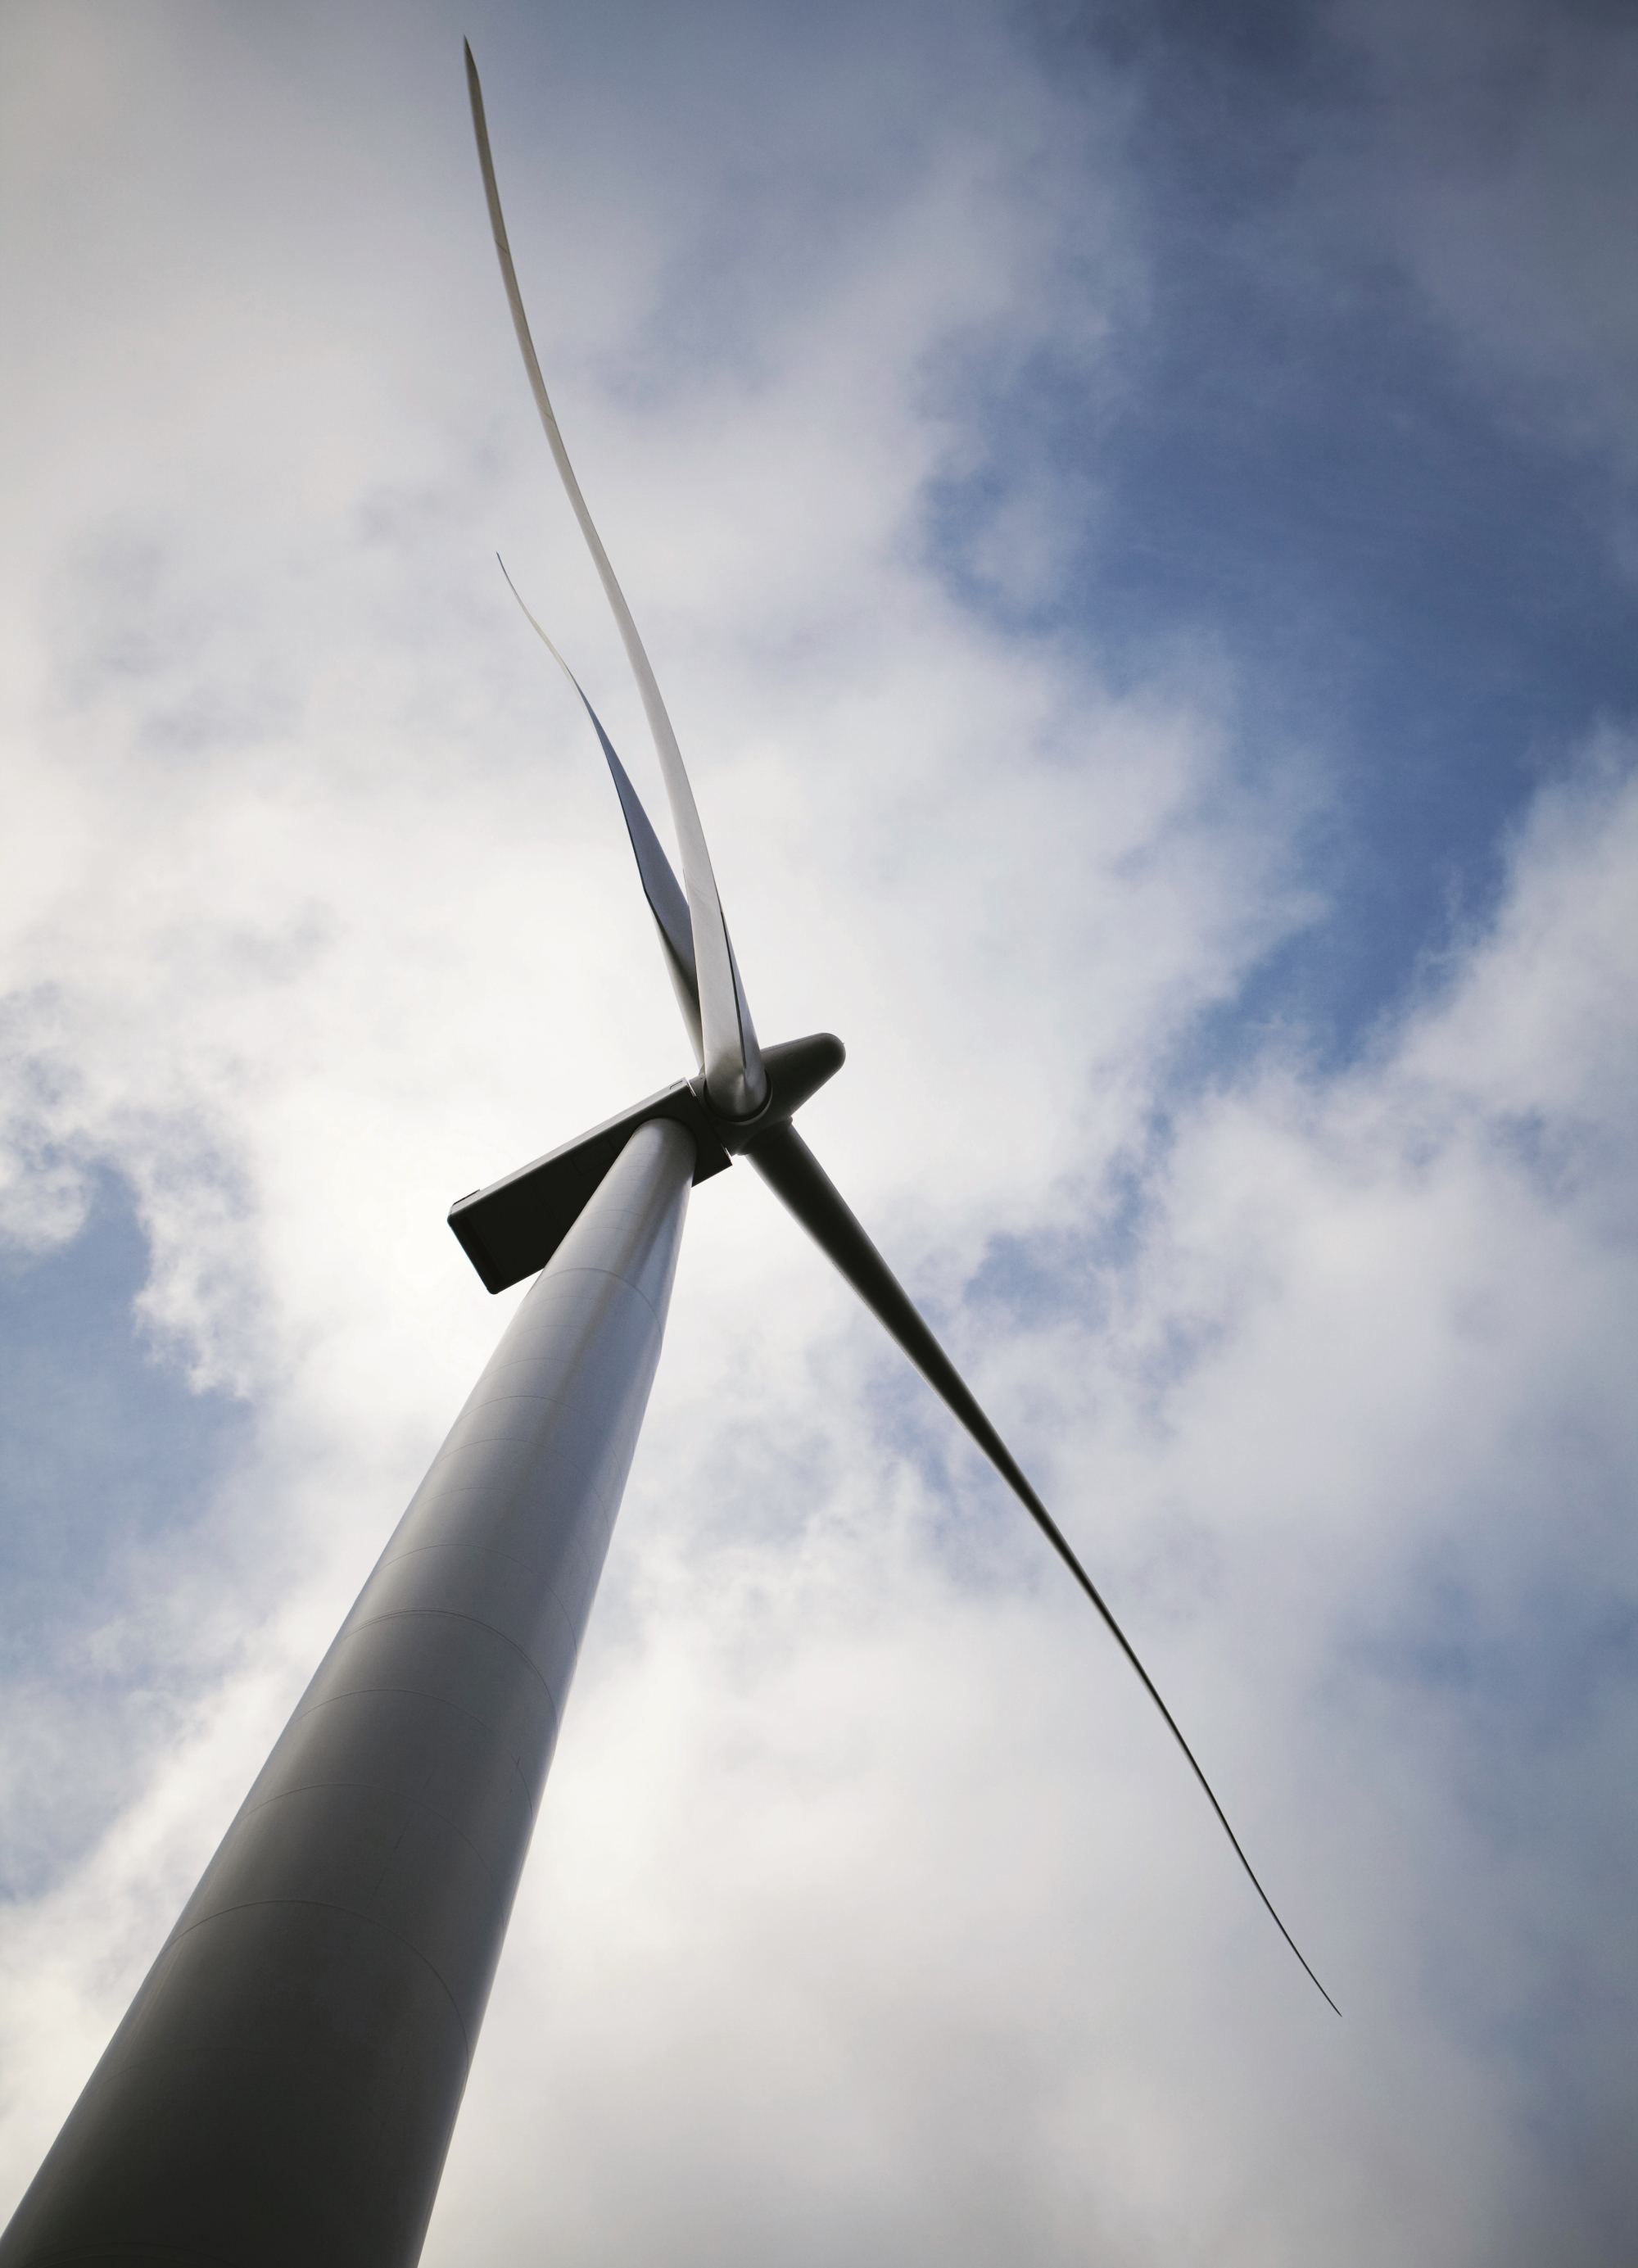 http://www.evwind.es/wp-content/uploads/2013/11/siemens-wind-power-wind-turbine.jpg